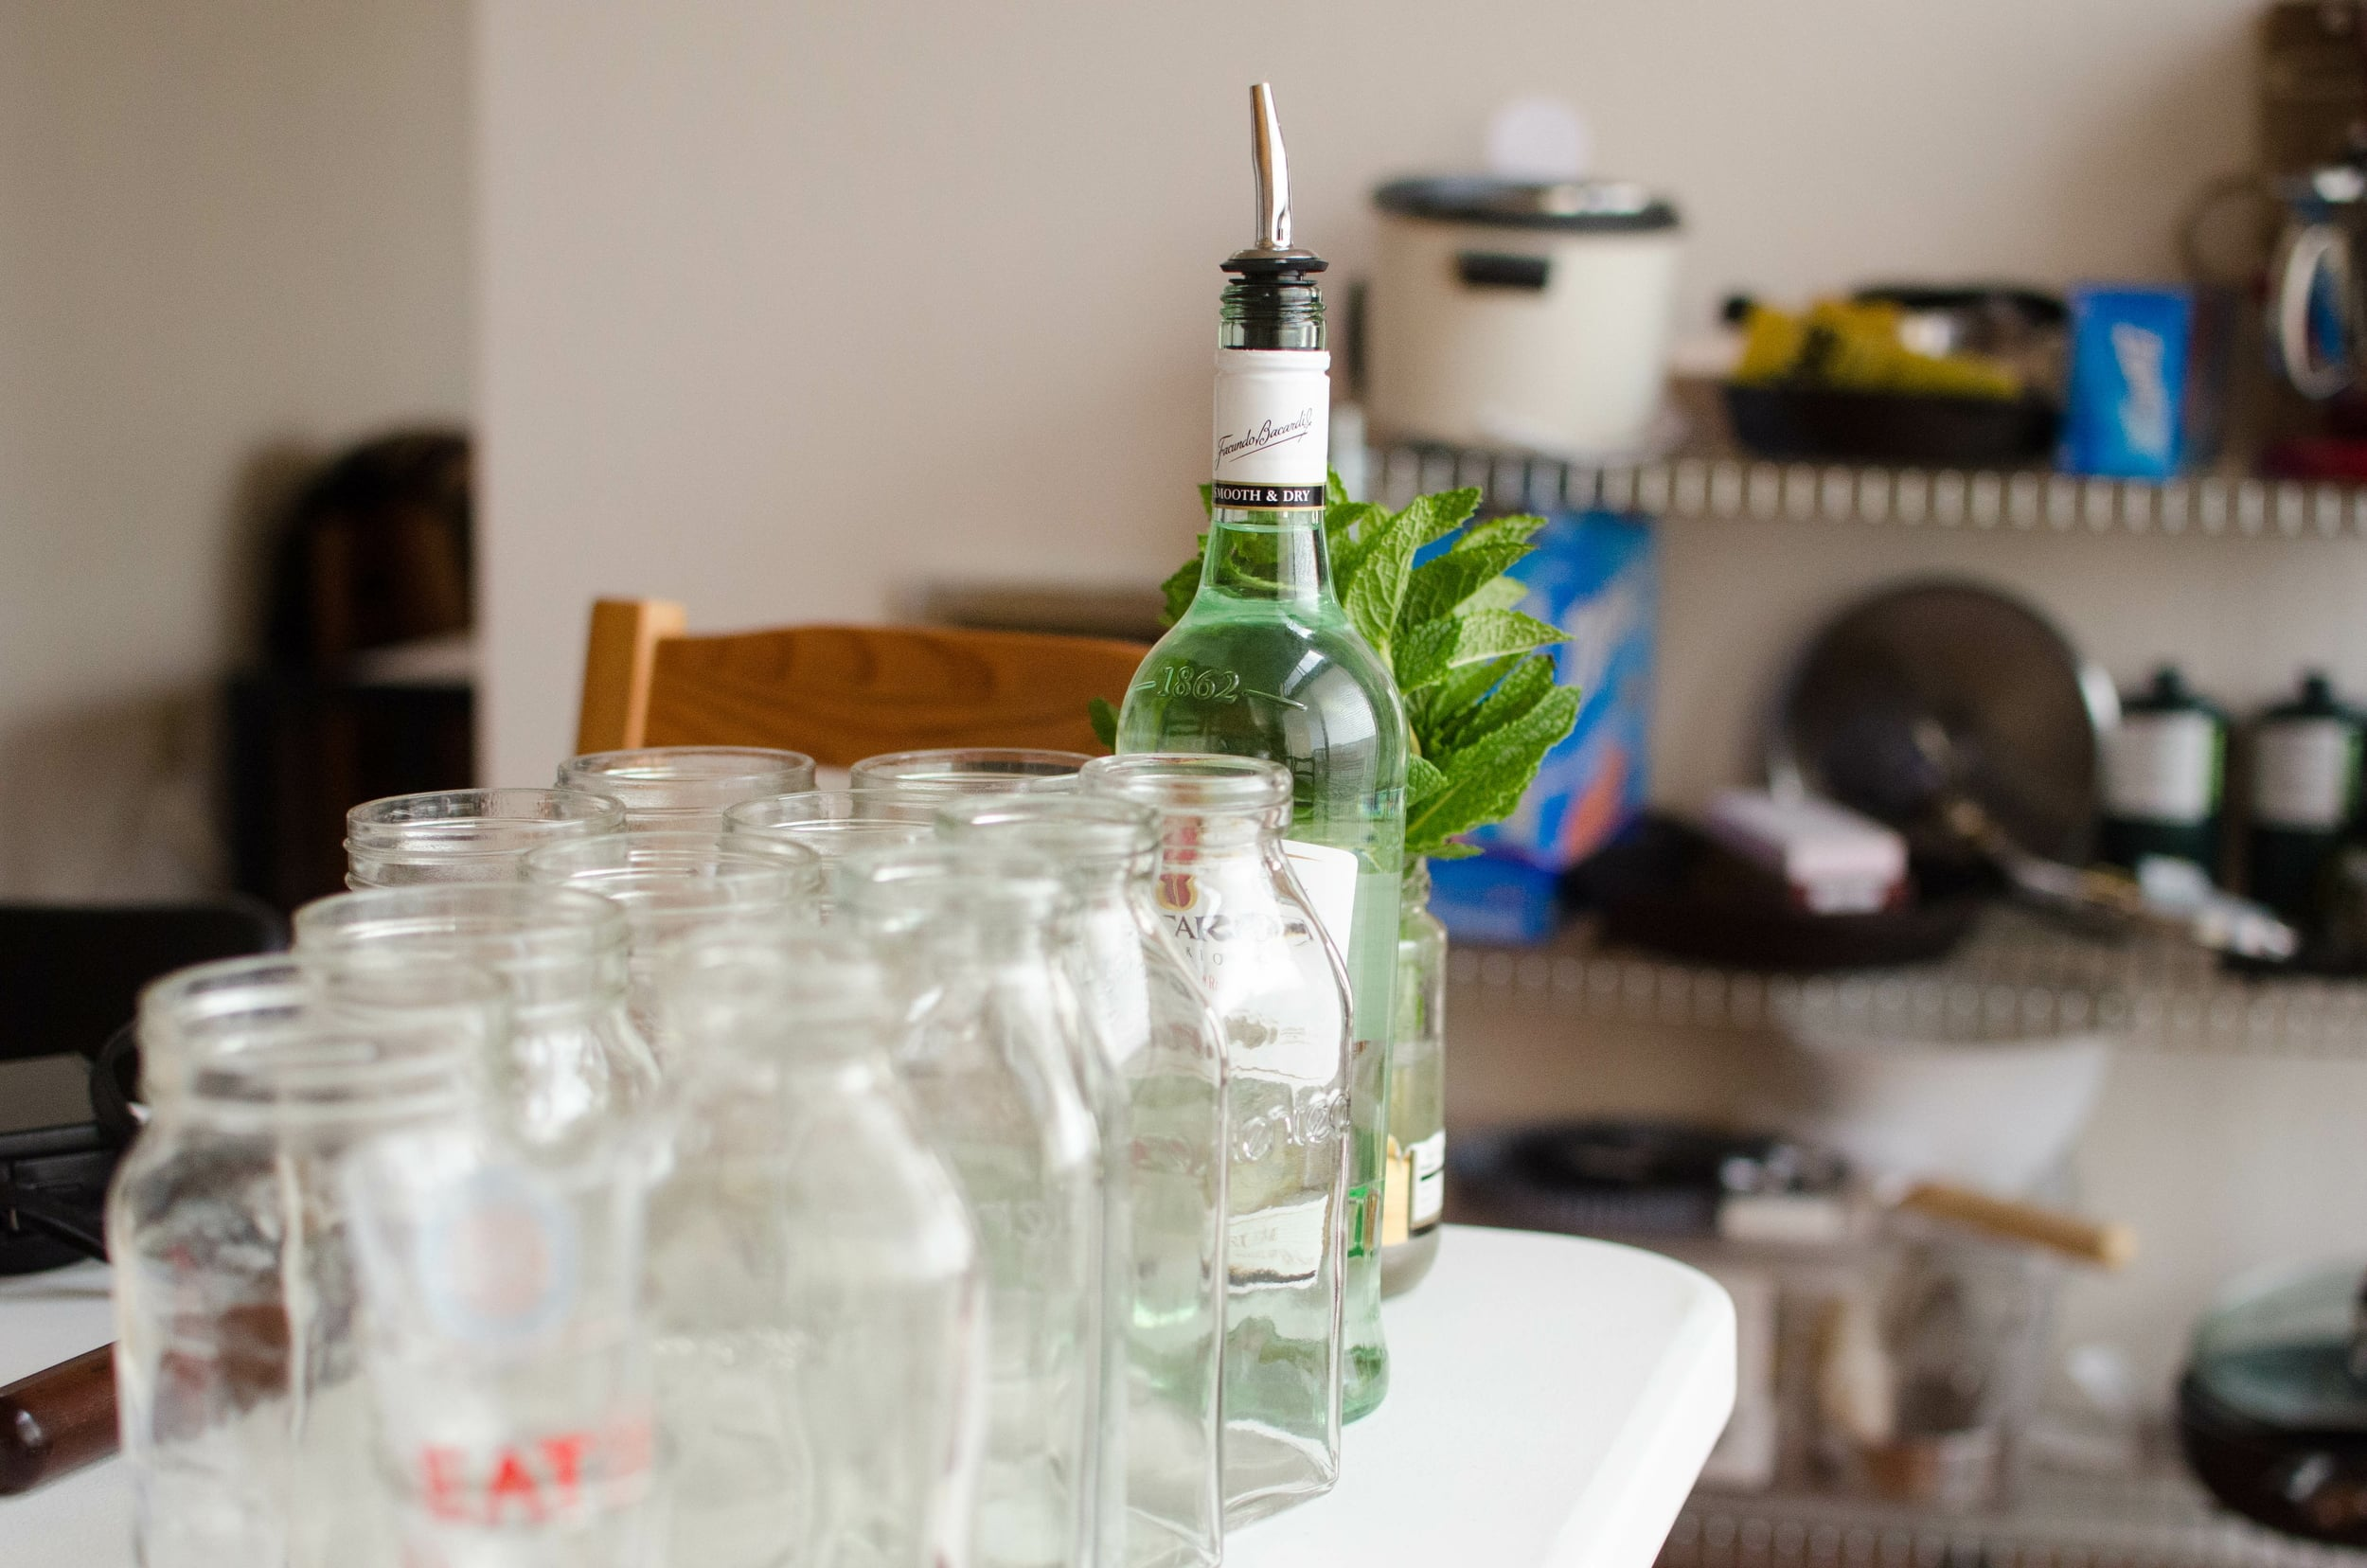 mojito station with hipster jars